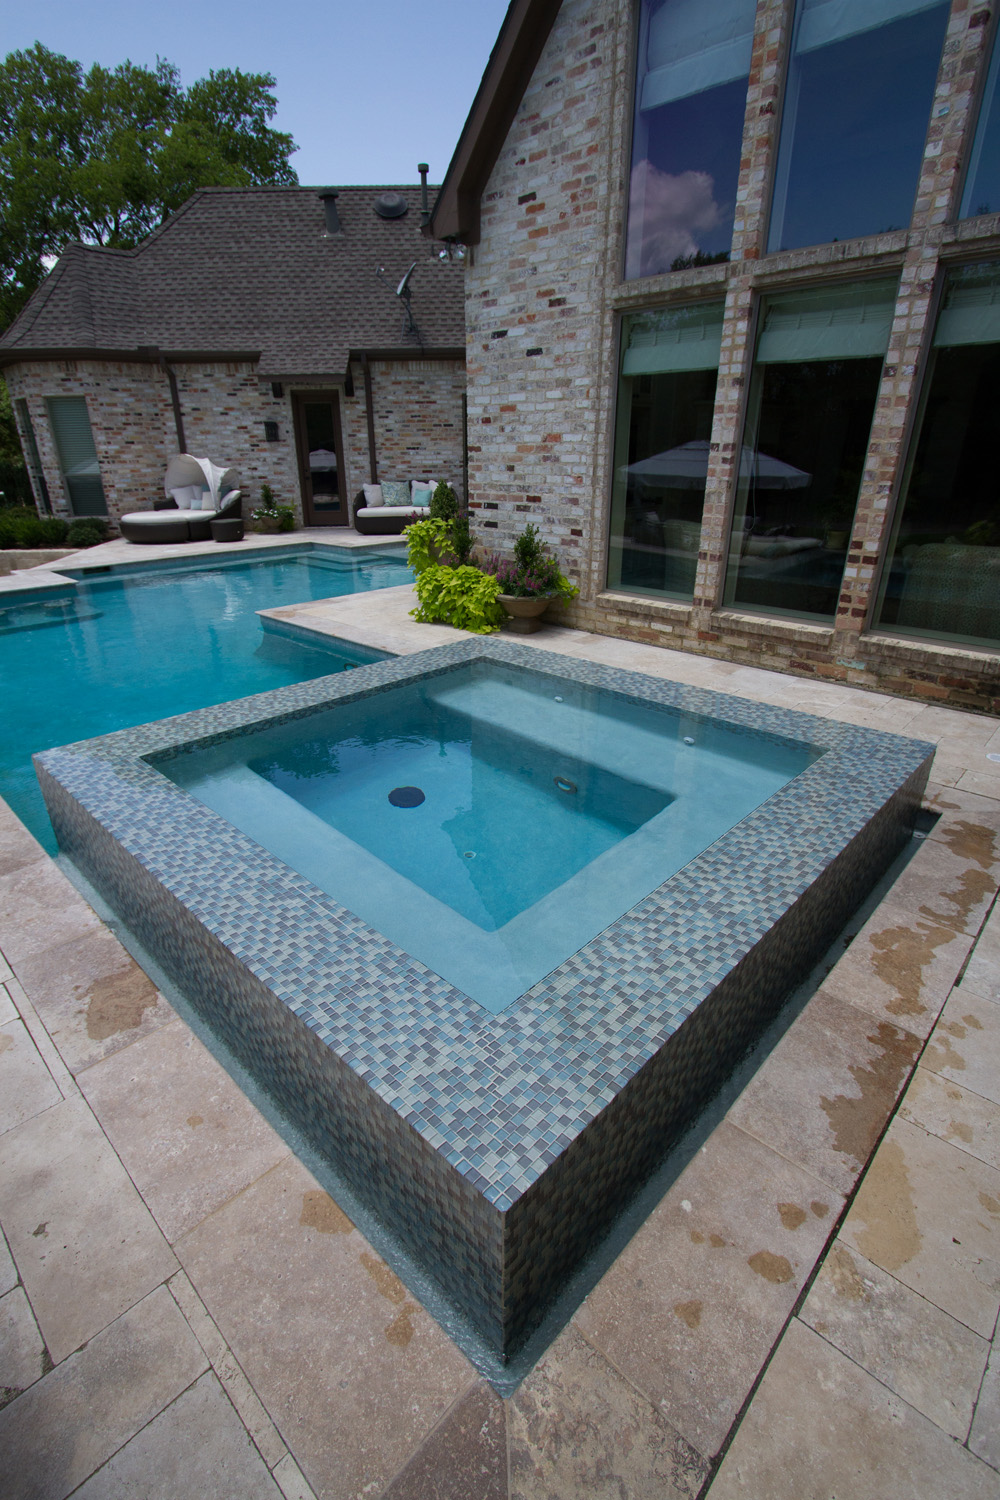 Sam's Outdoor Living, Heath Pool